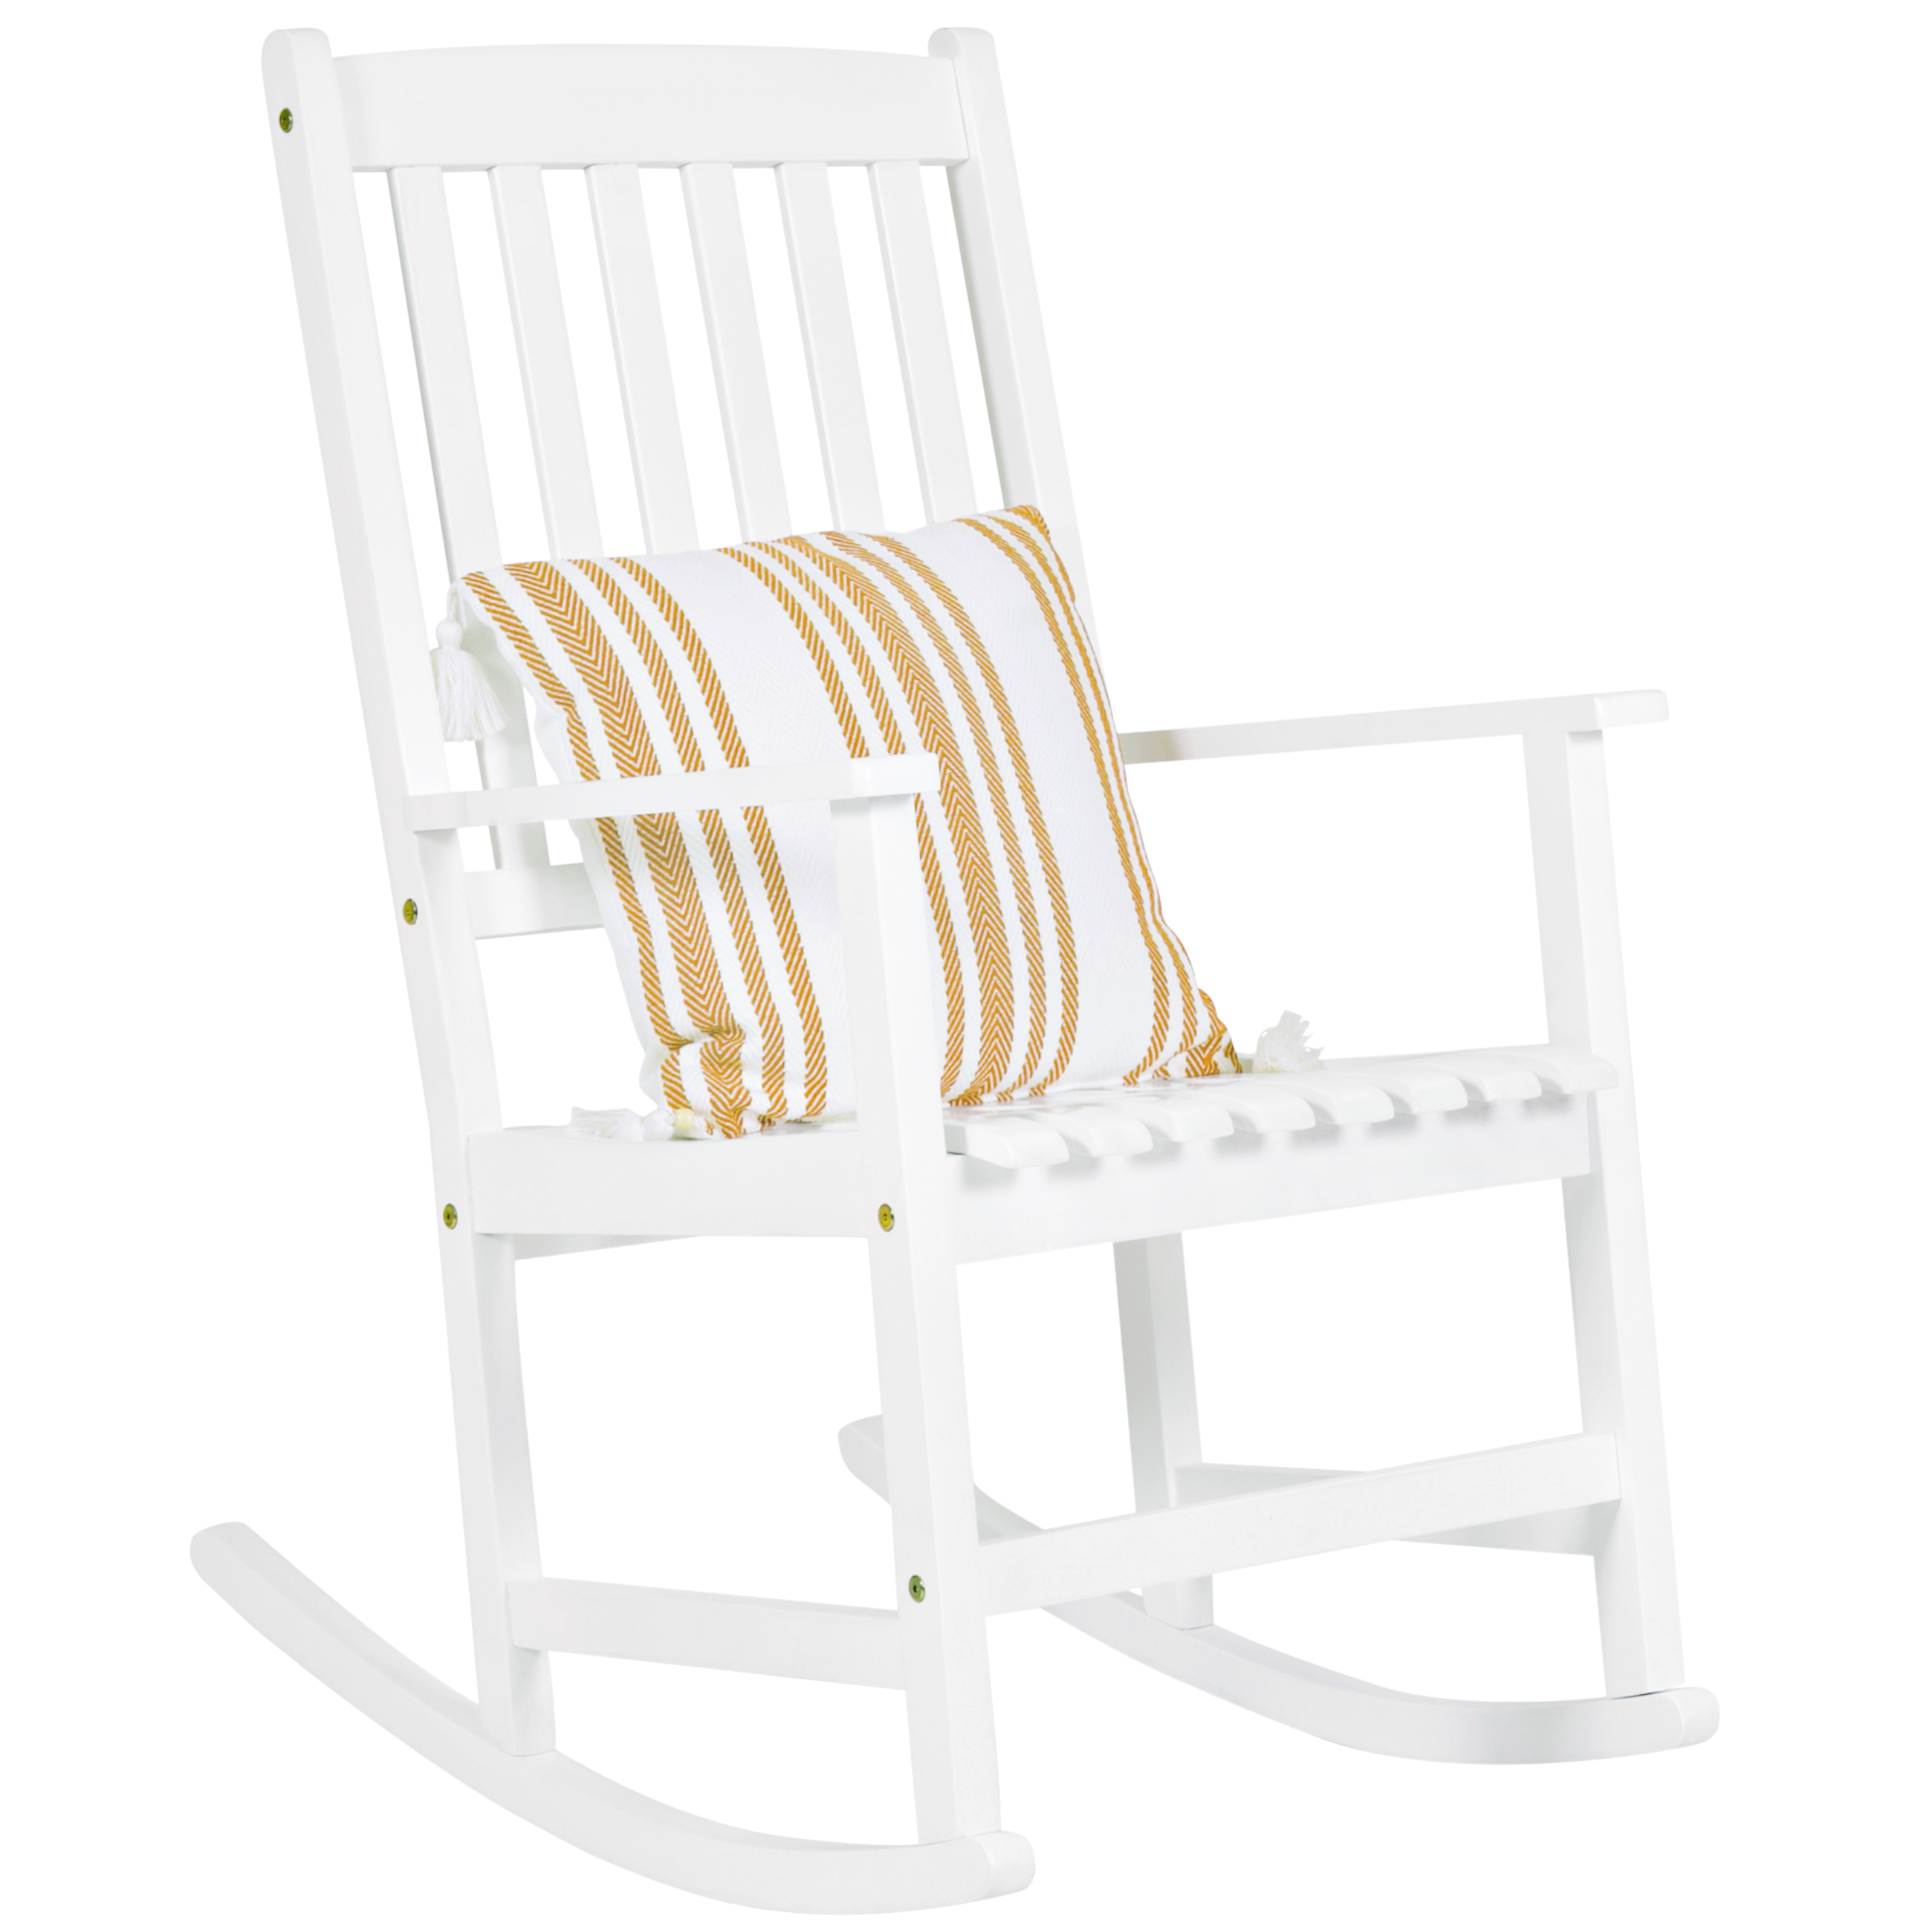 Best Choice Products Indoor Outdoor Traditional Wooden Rocking Chair  Furniture W/ Slatted Seat And Backrest